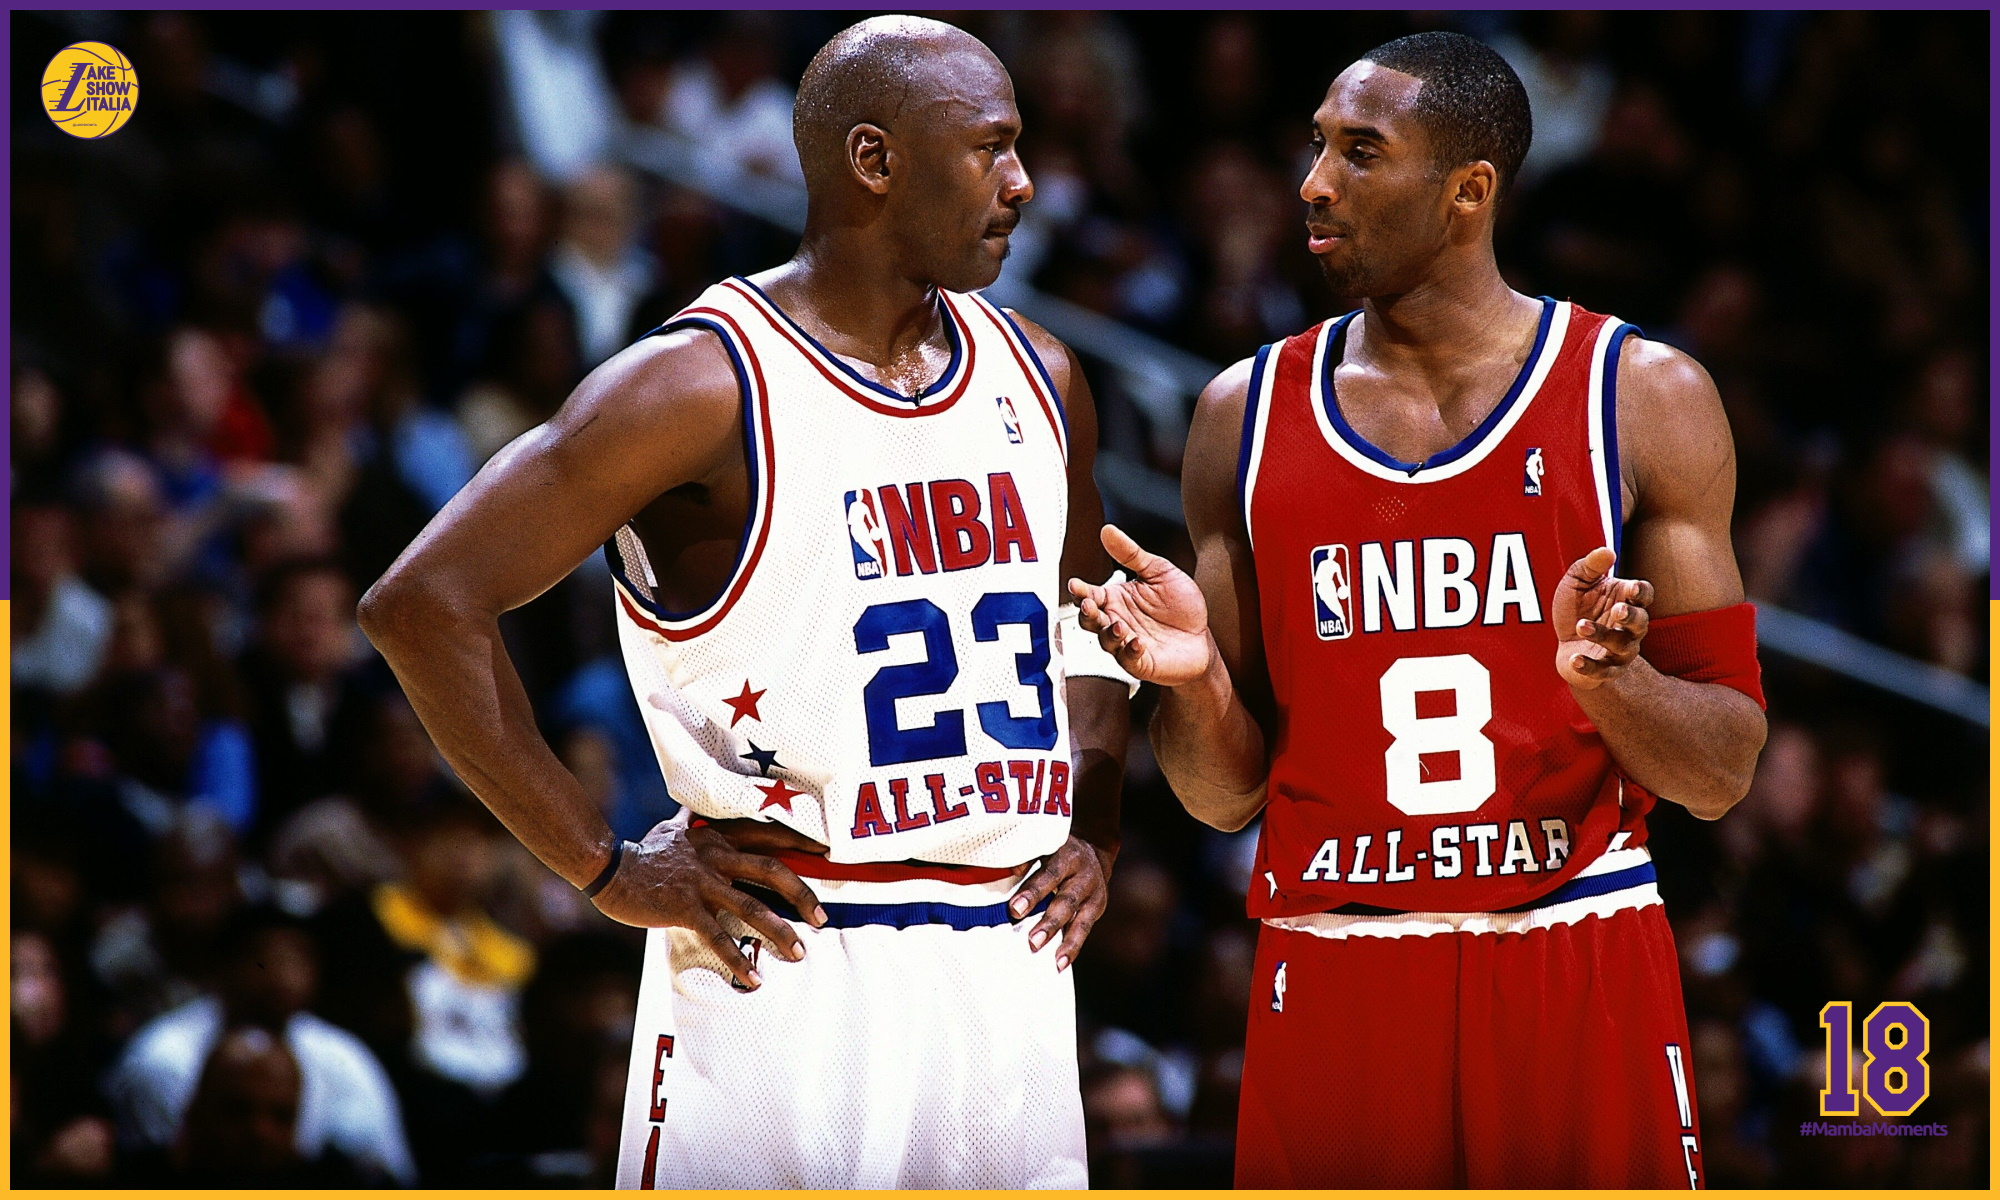 Kobe Bryant talks with Michael Jordan during the 2003 NBA All-Star Game at the Phillips Arena on February 9, 2003